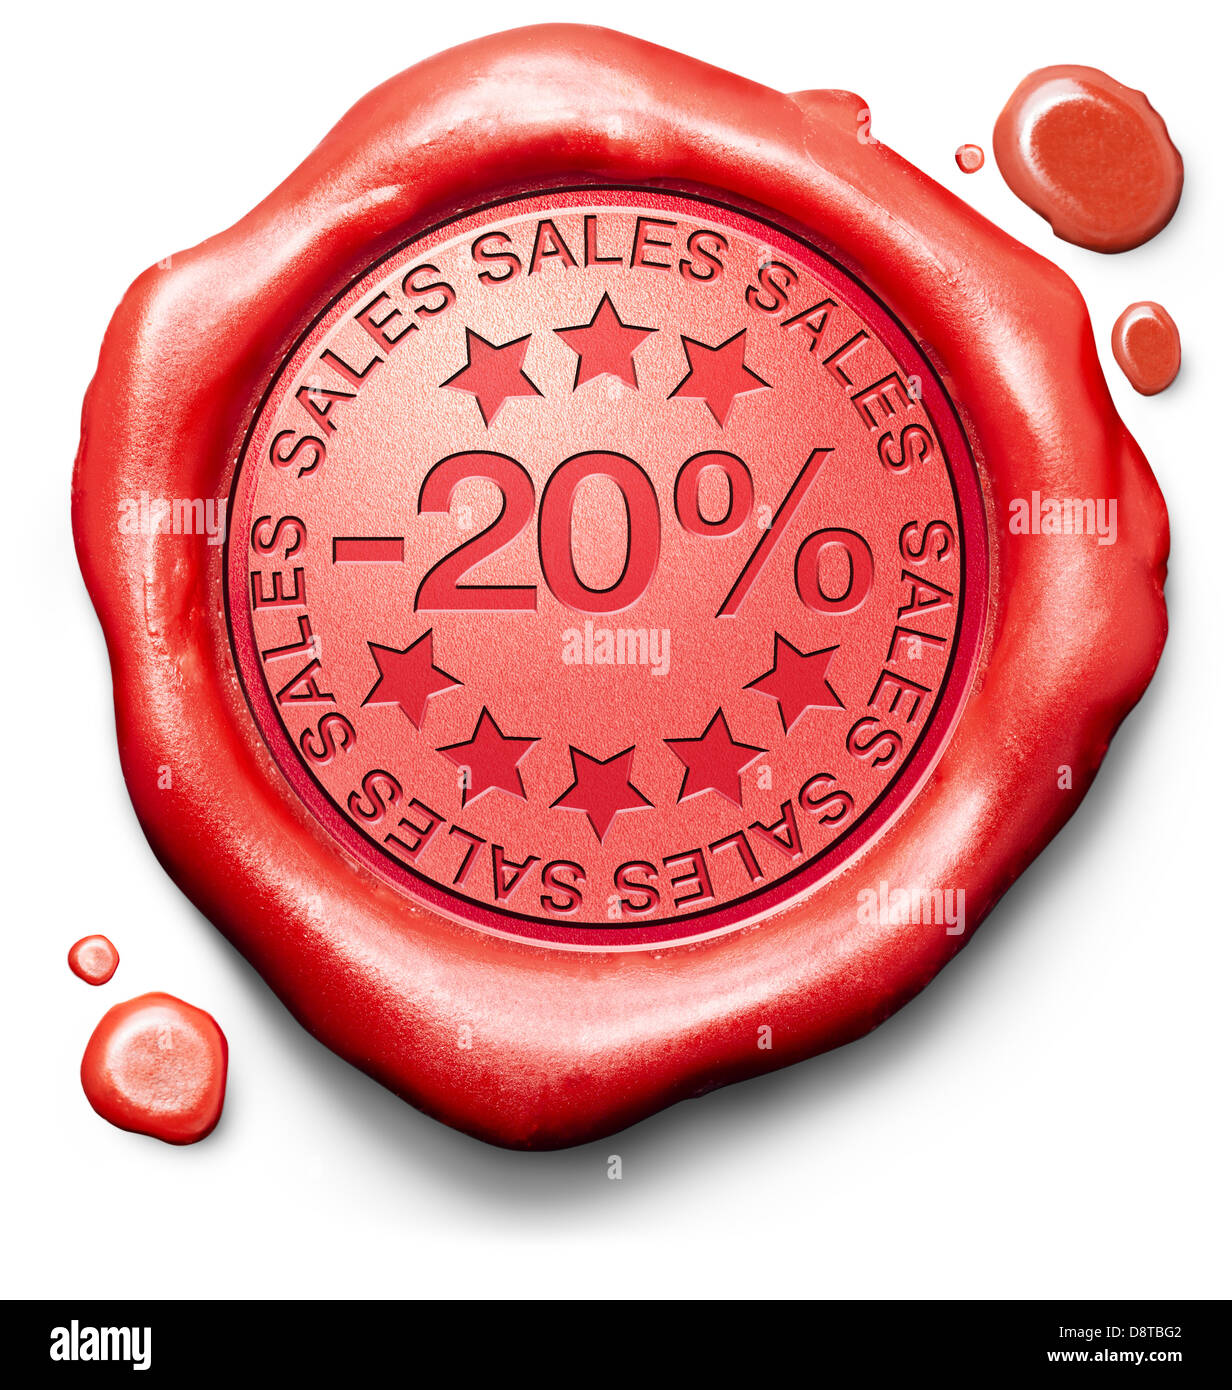 20% off sales summer or winter reduction extra low price buy for bargain limited offer icon red wax seal stamp - Stock Image